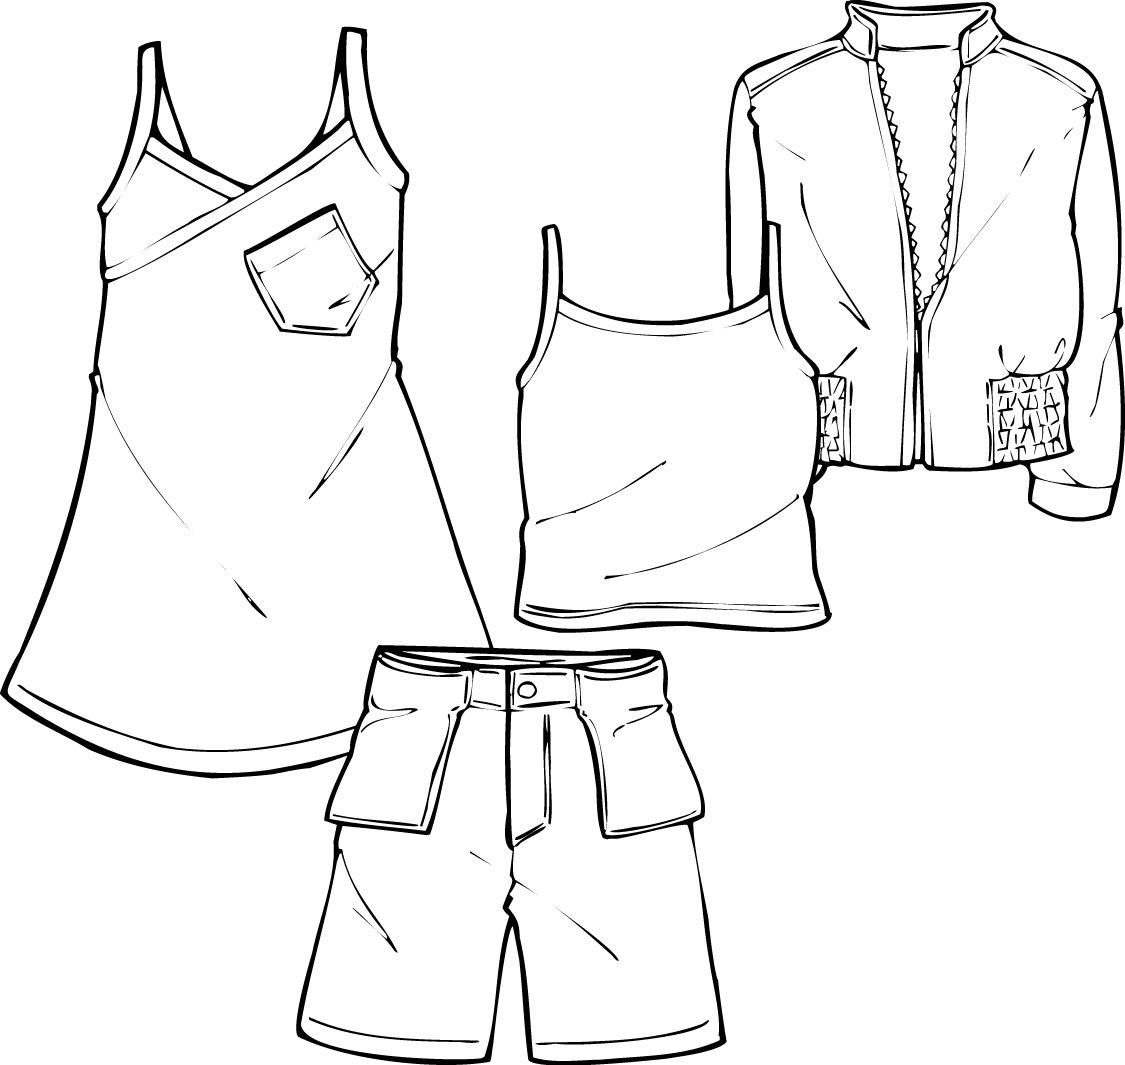 Croquis robe pour fille | Fashion croquis templates illustrator ...